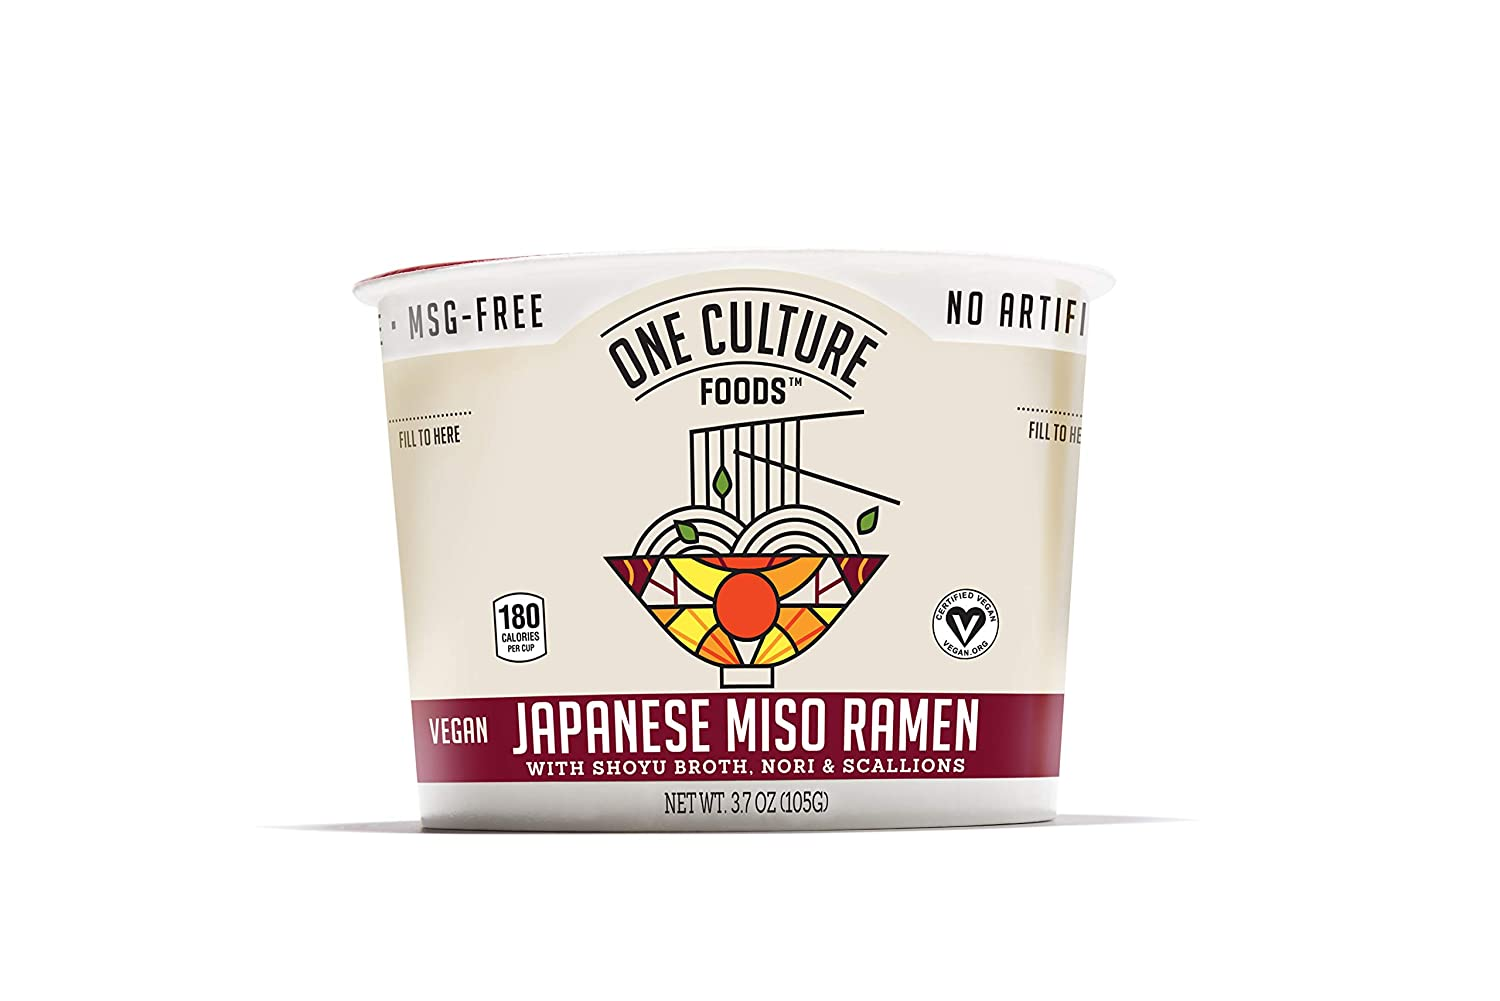 One Culture Foods Plant-Based Instant Cup Noodles, Japanese Miso Ramen - Natural - Non-GMO (Pack of 8)